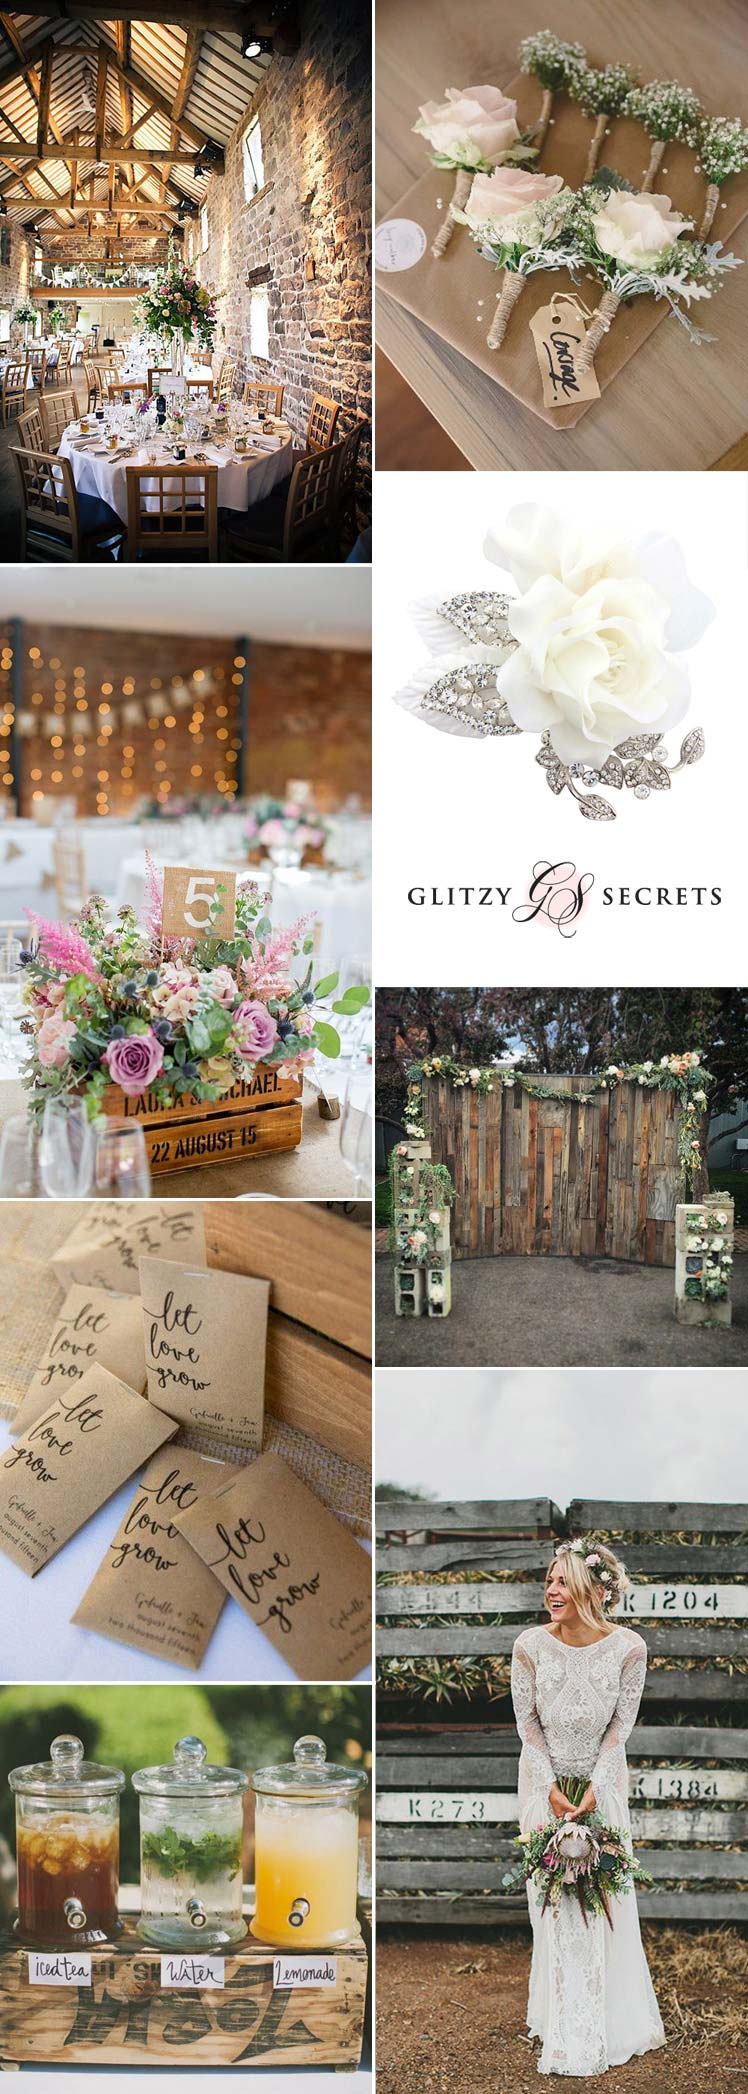 a rustic countryside wedding theme